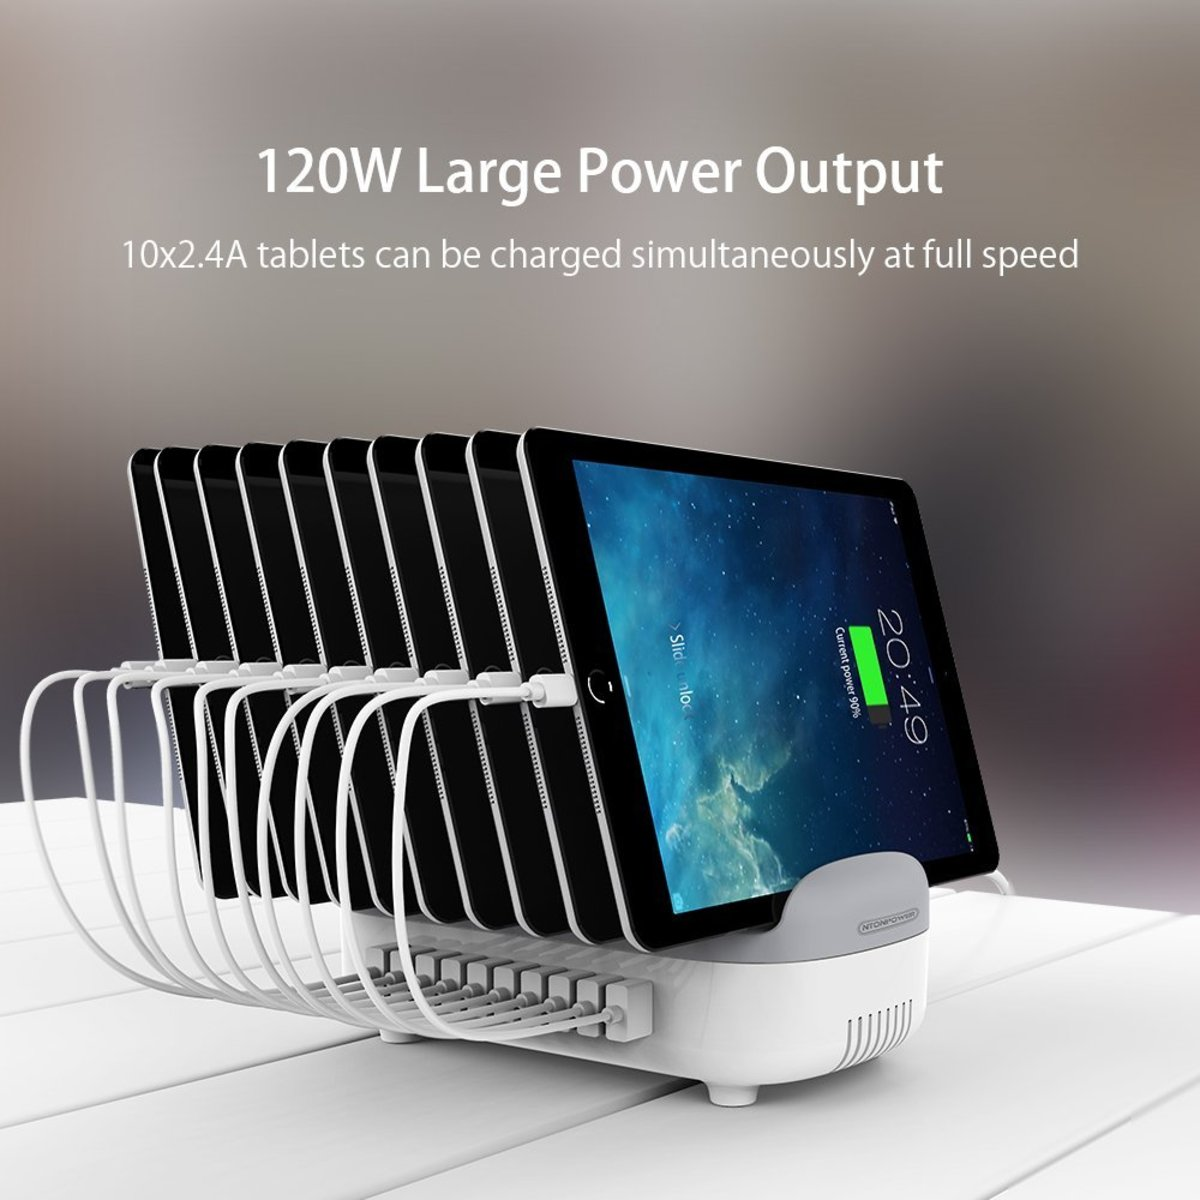 NTONPOWER 10-Port Multiple Charging Station Review